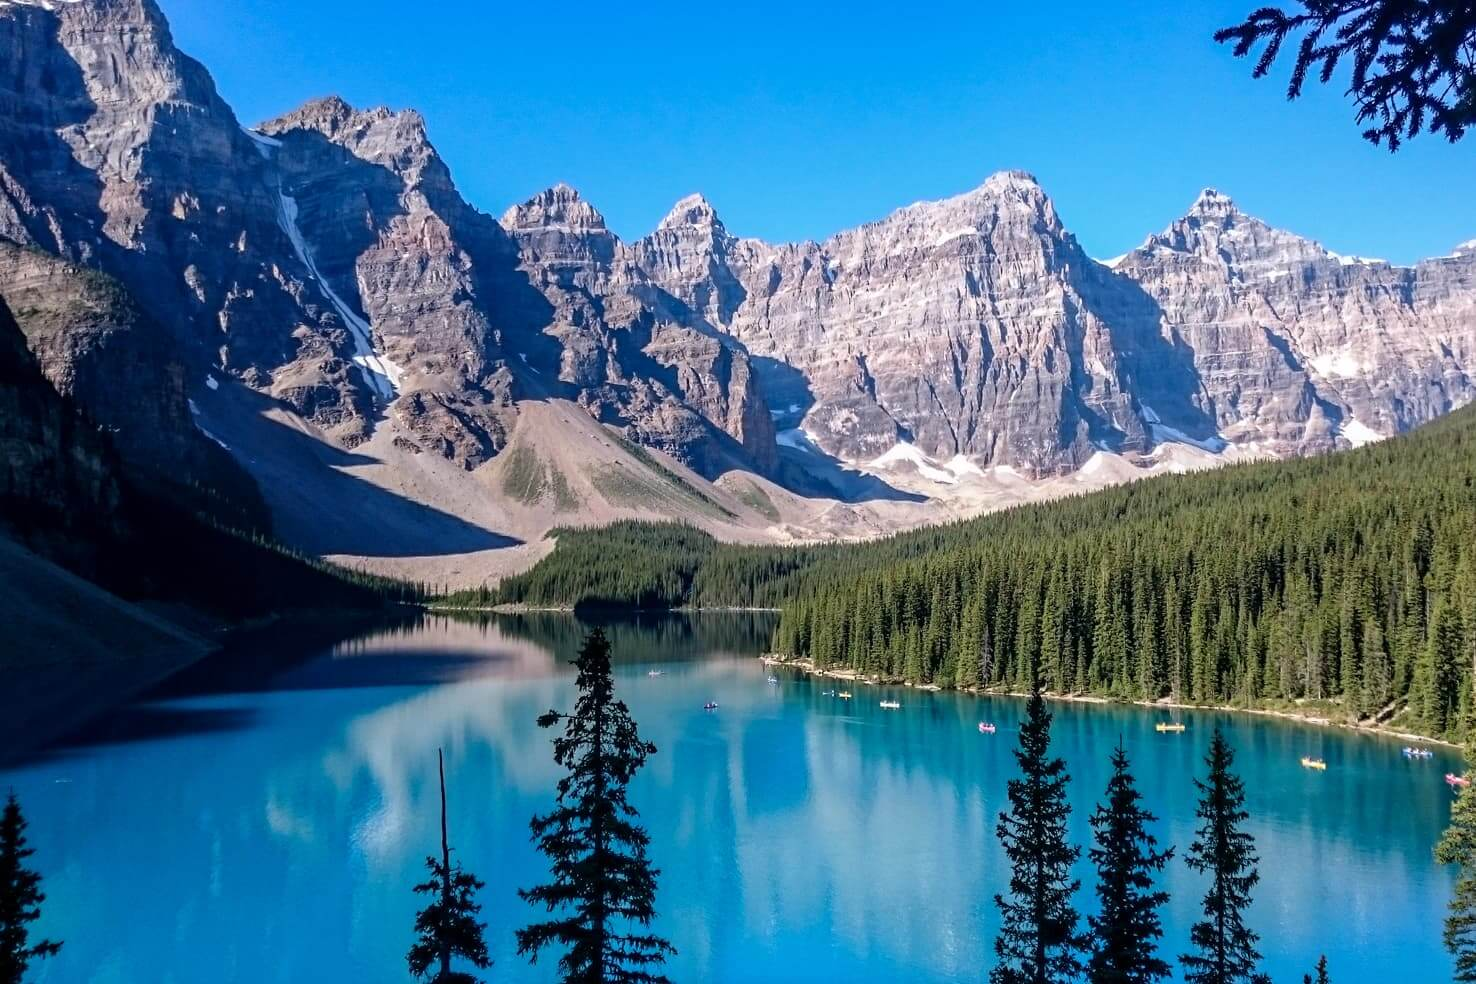 100 best things to do in Banff National Park, Canada - Visit famous Moraine Lake